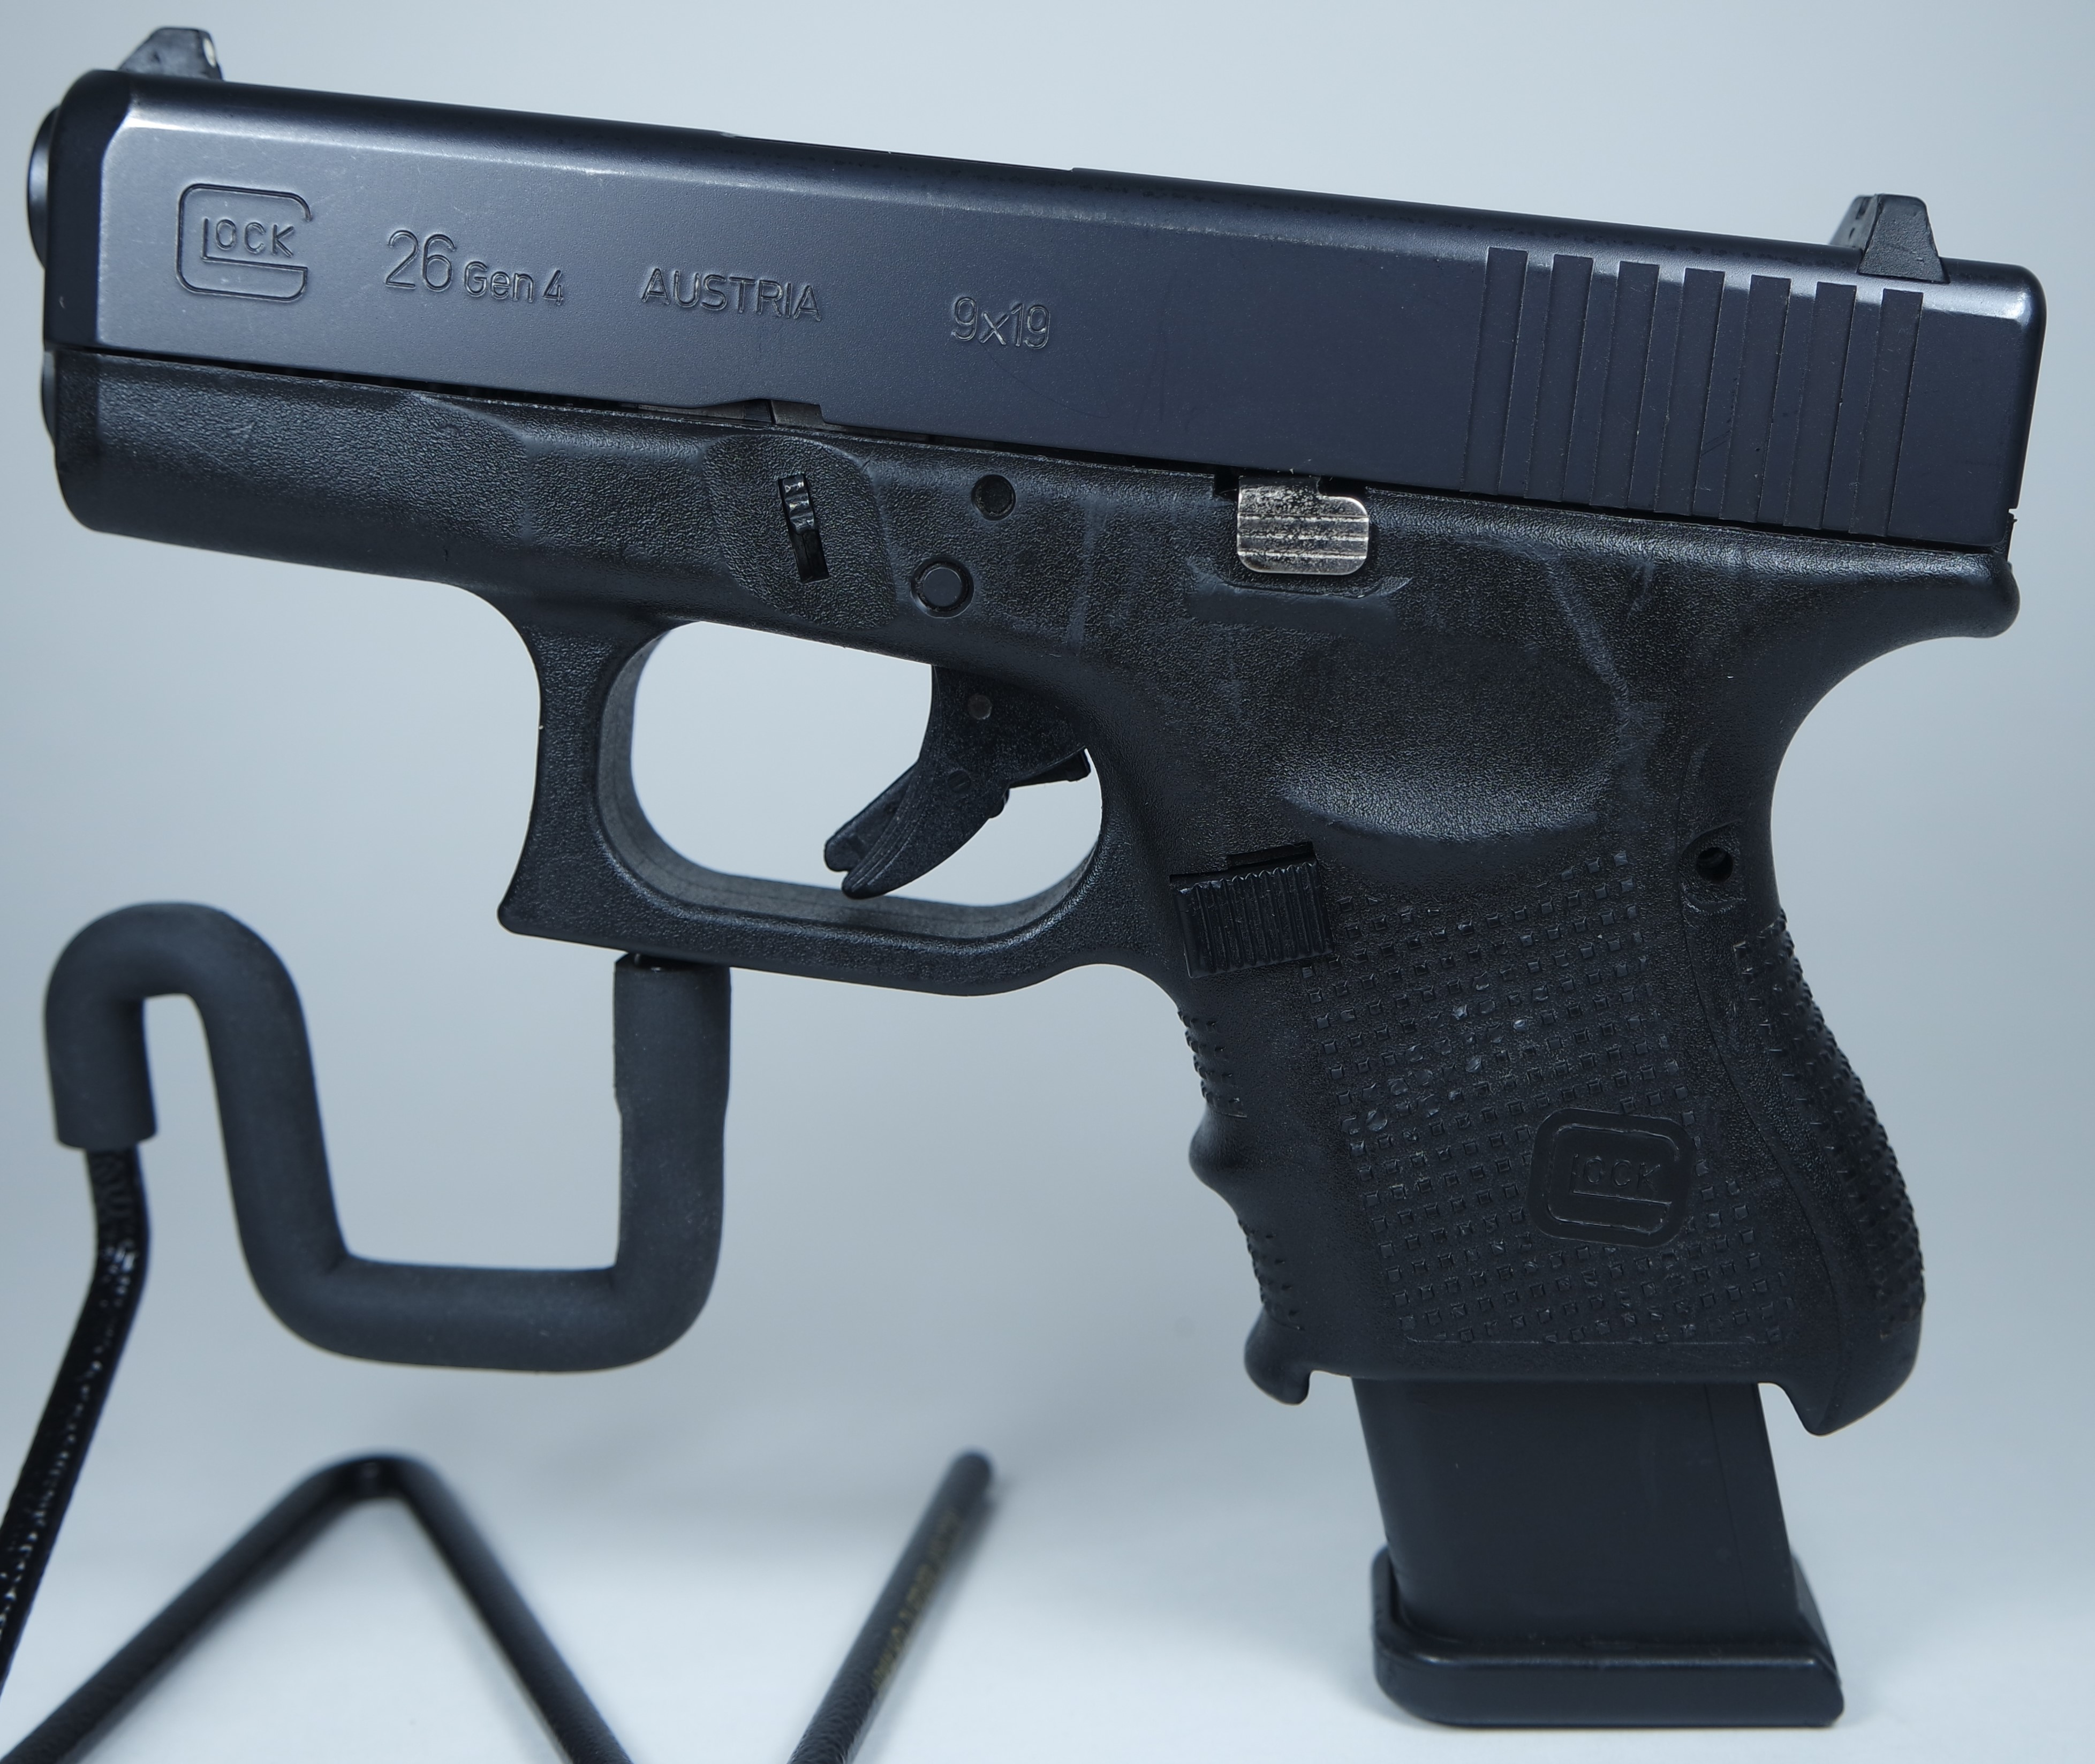 Glock 26 Gen 4 Pistol 9mm 3in 15rd Black Sub-Compact Fixed Sights Pre-owned